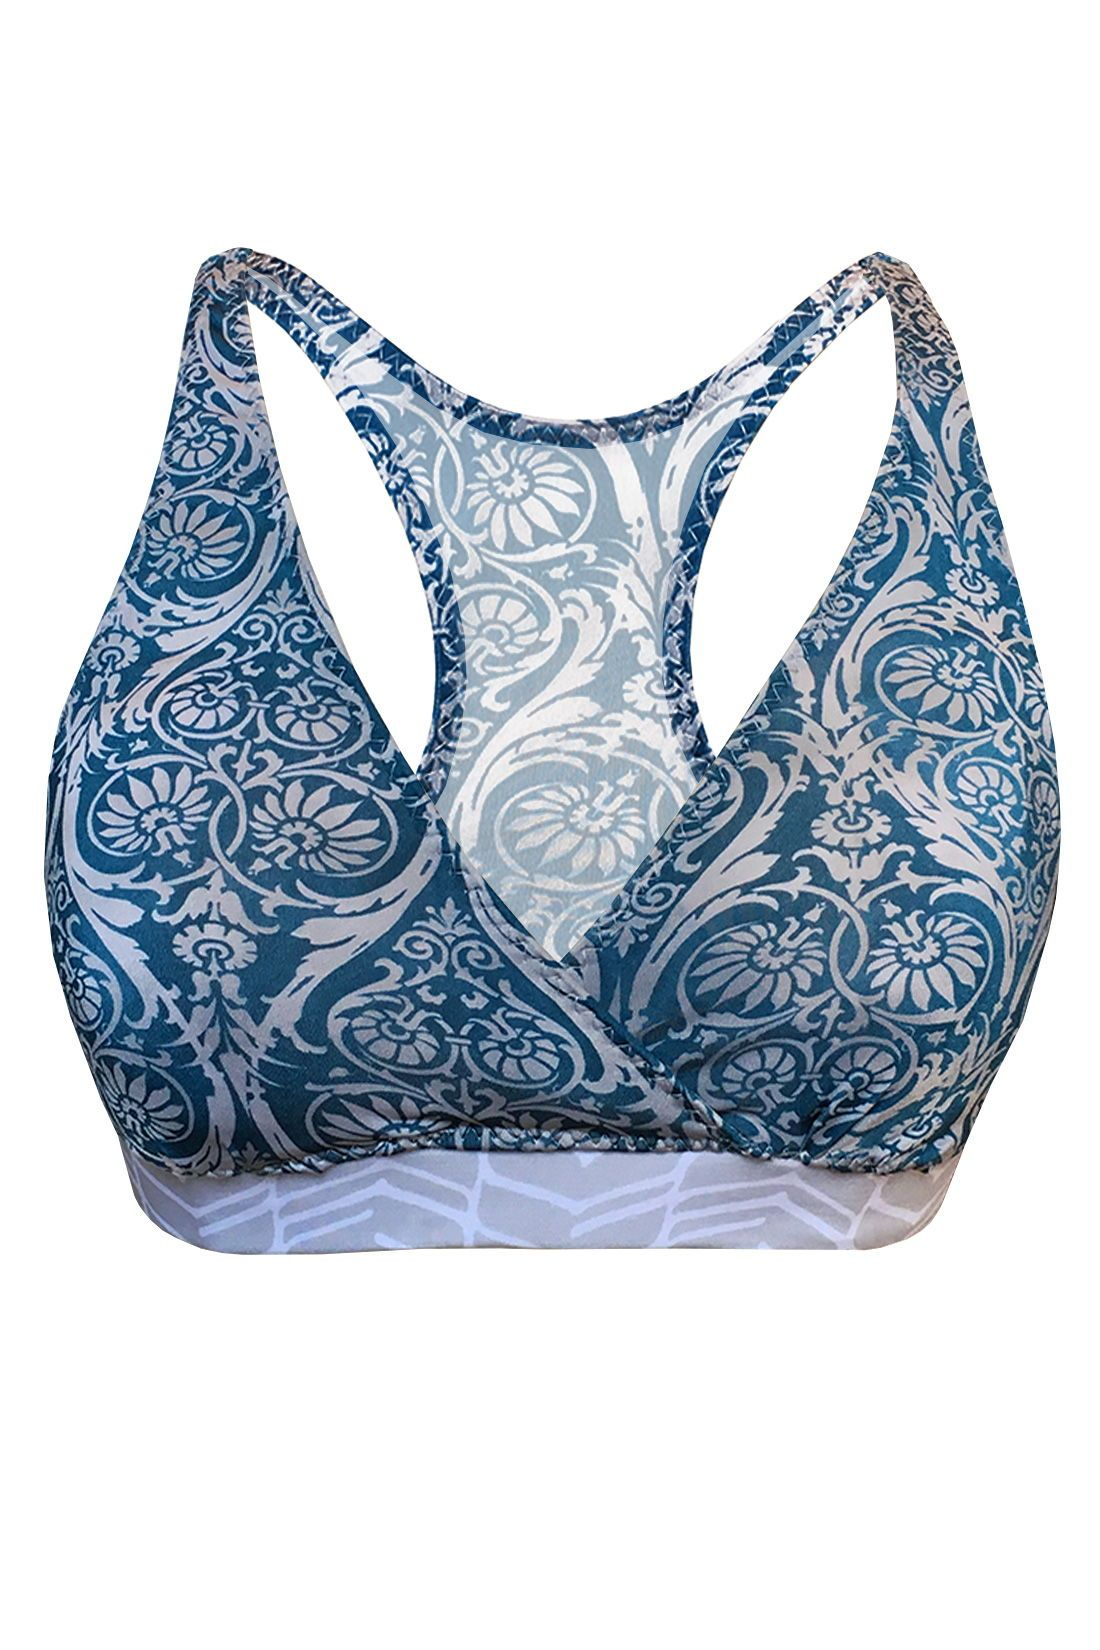 The Padded Sporty Bra (With images) Bra styles, Sporty